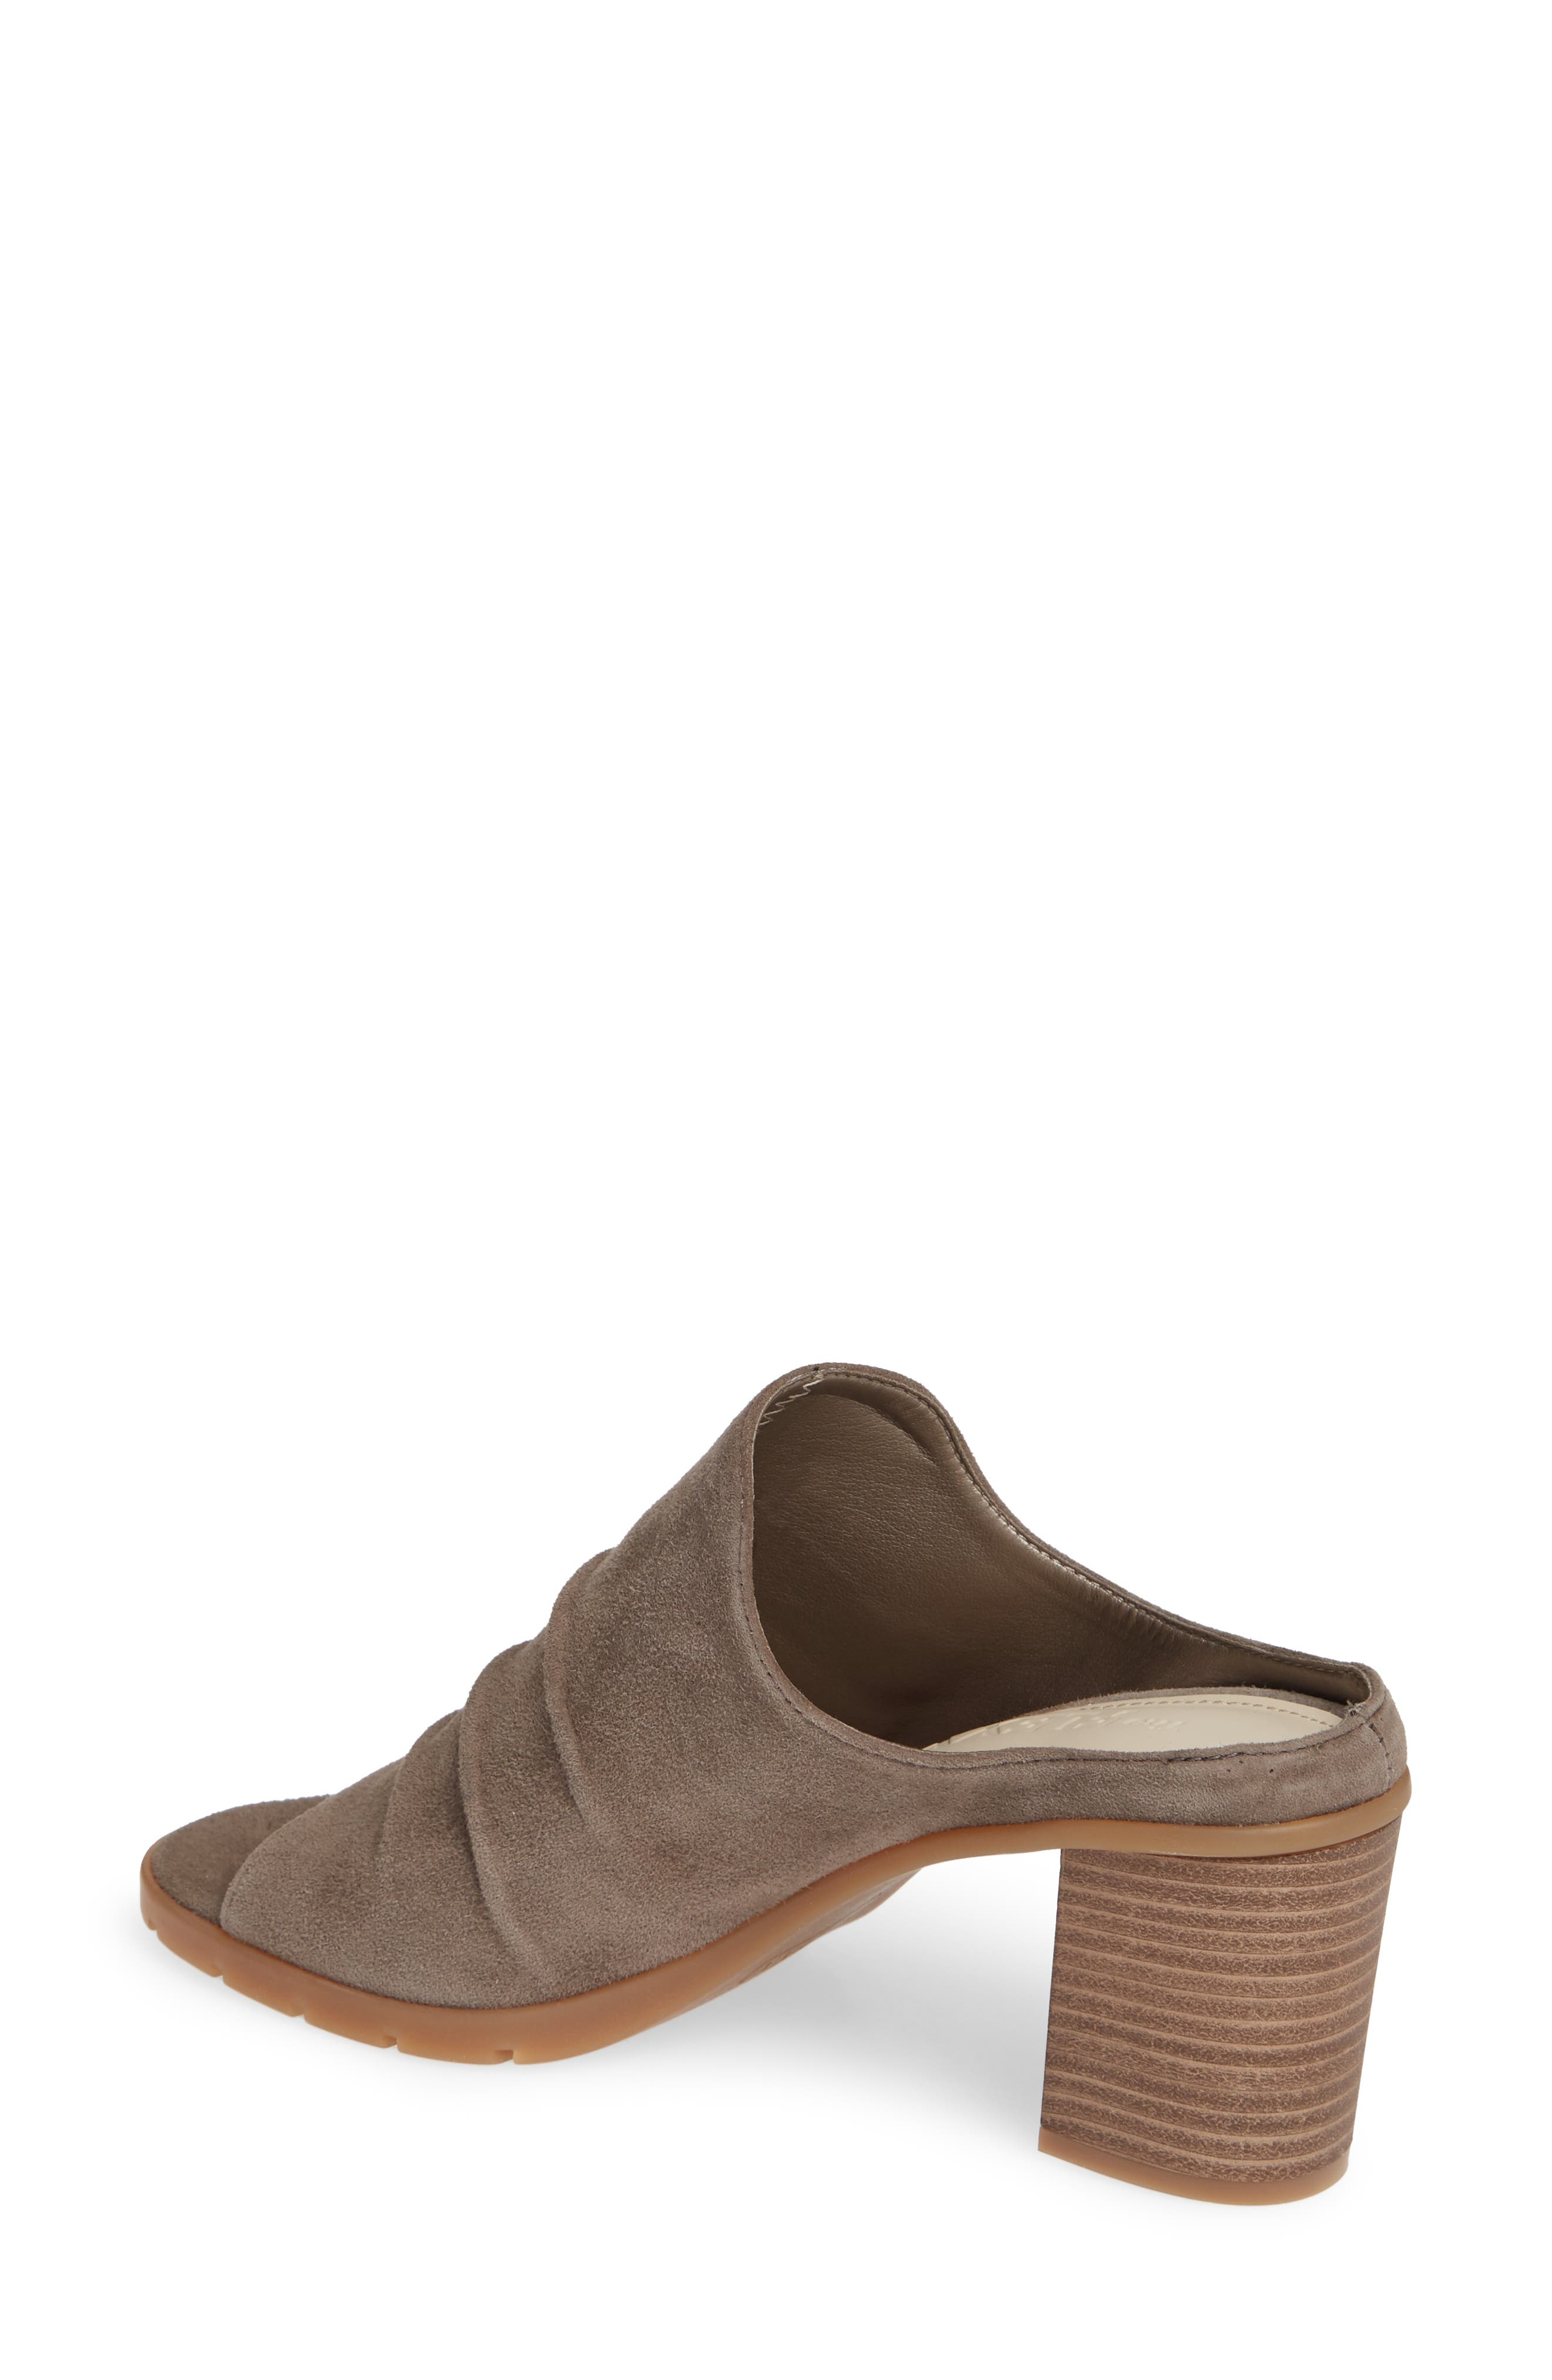 Aim to Pleat Mule,                             Alternate thumbnail 2, color,                             BROWN LEATHER